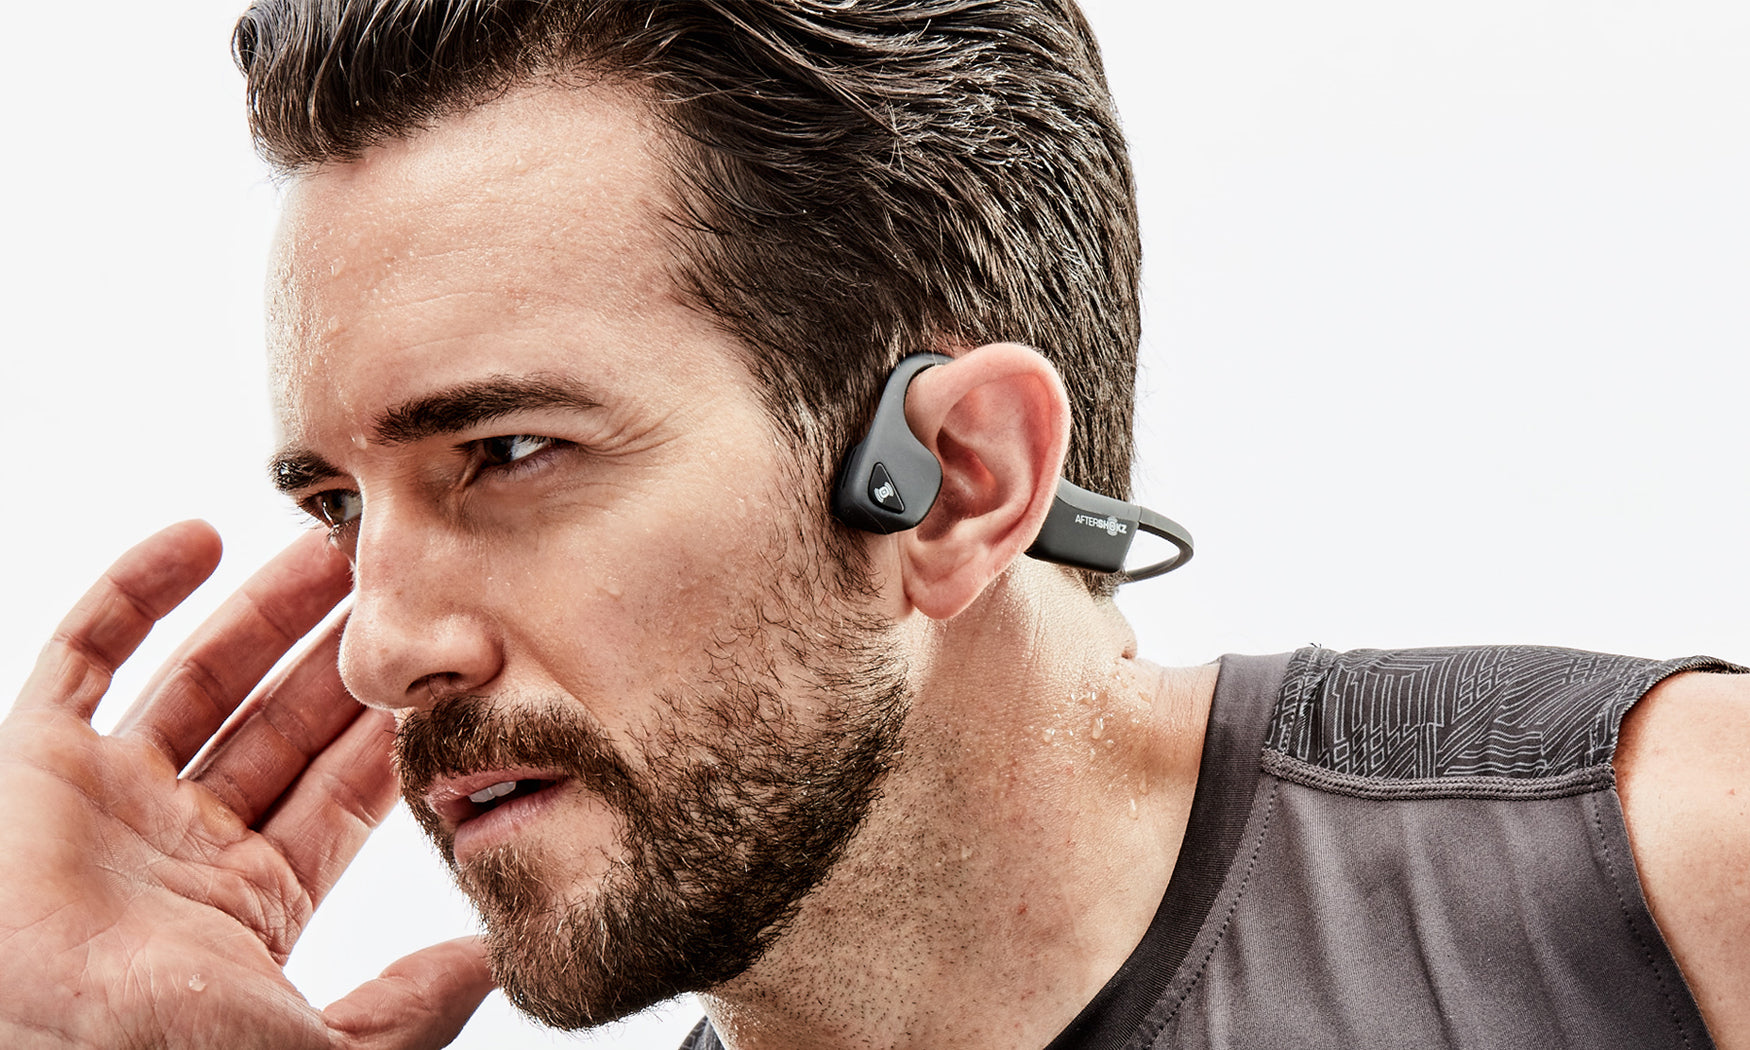 Introducing AfterShokz Air